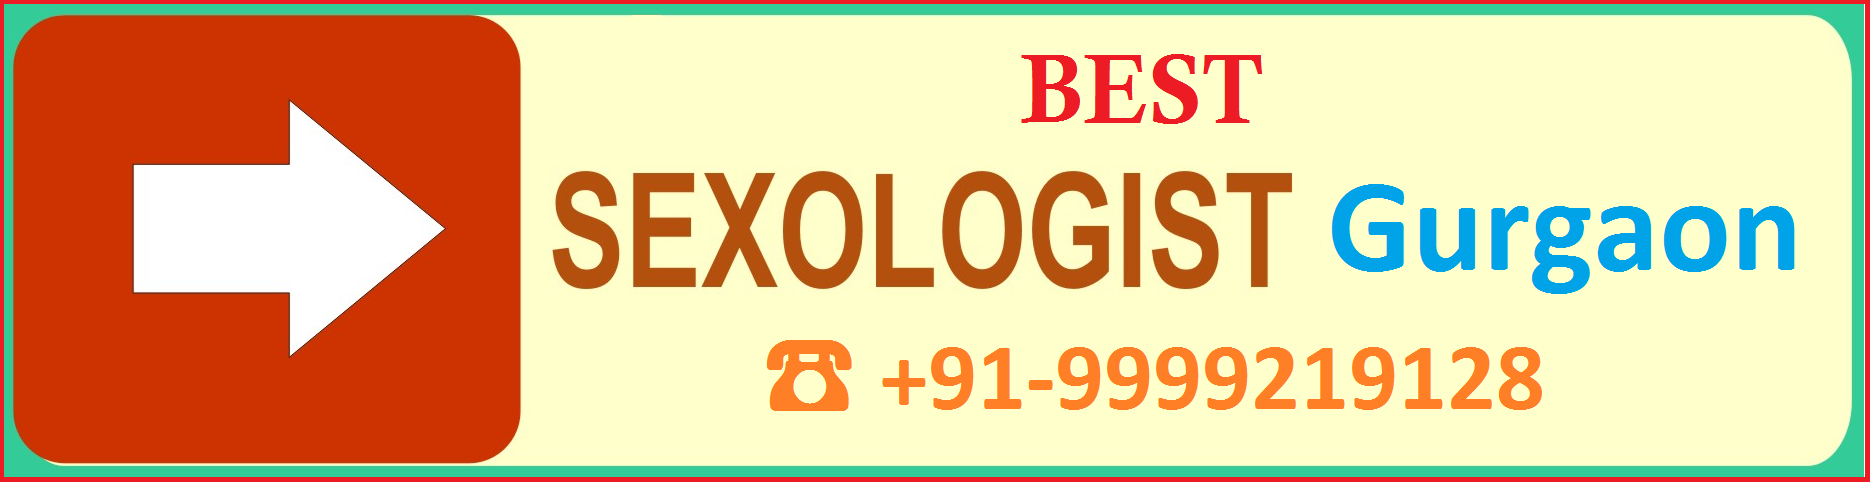 Sexologist doctors for male in Gurgaon, ☎ +91-9999219128